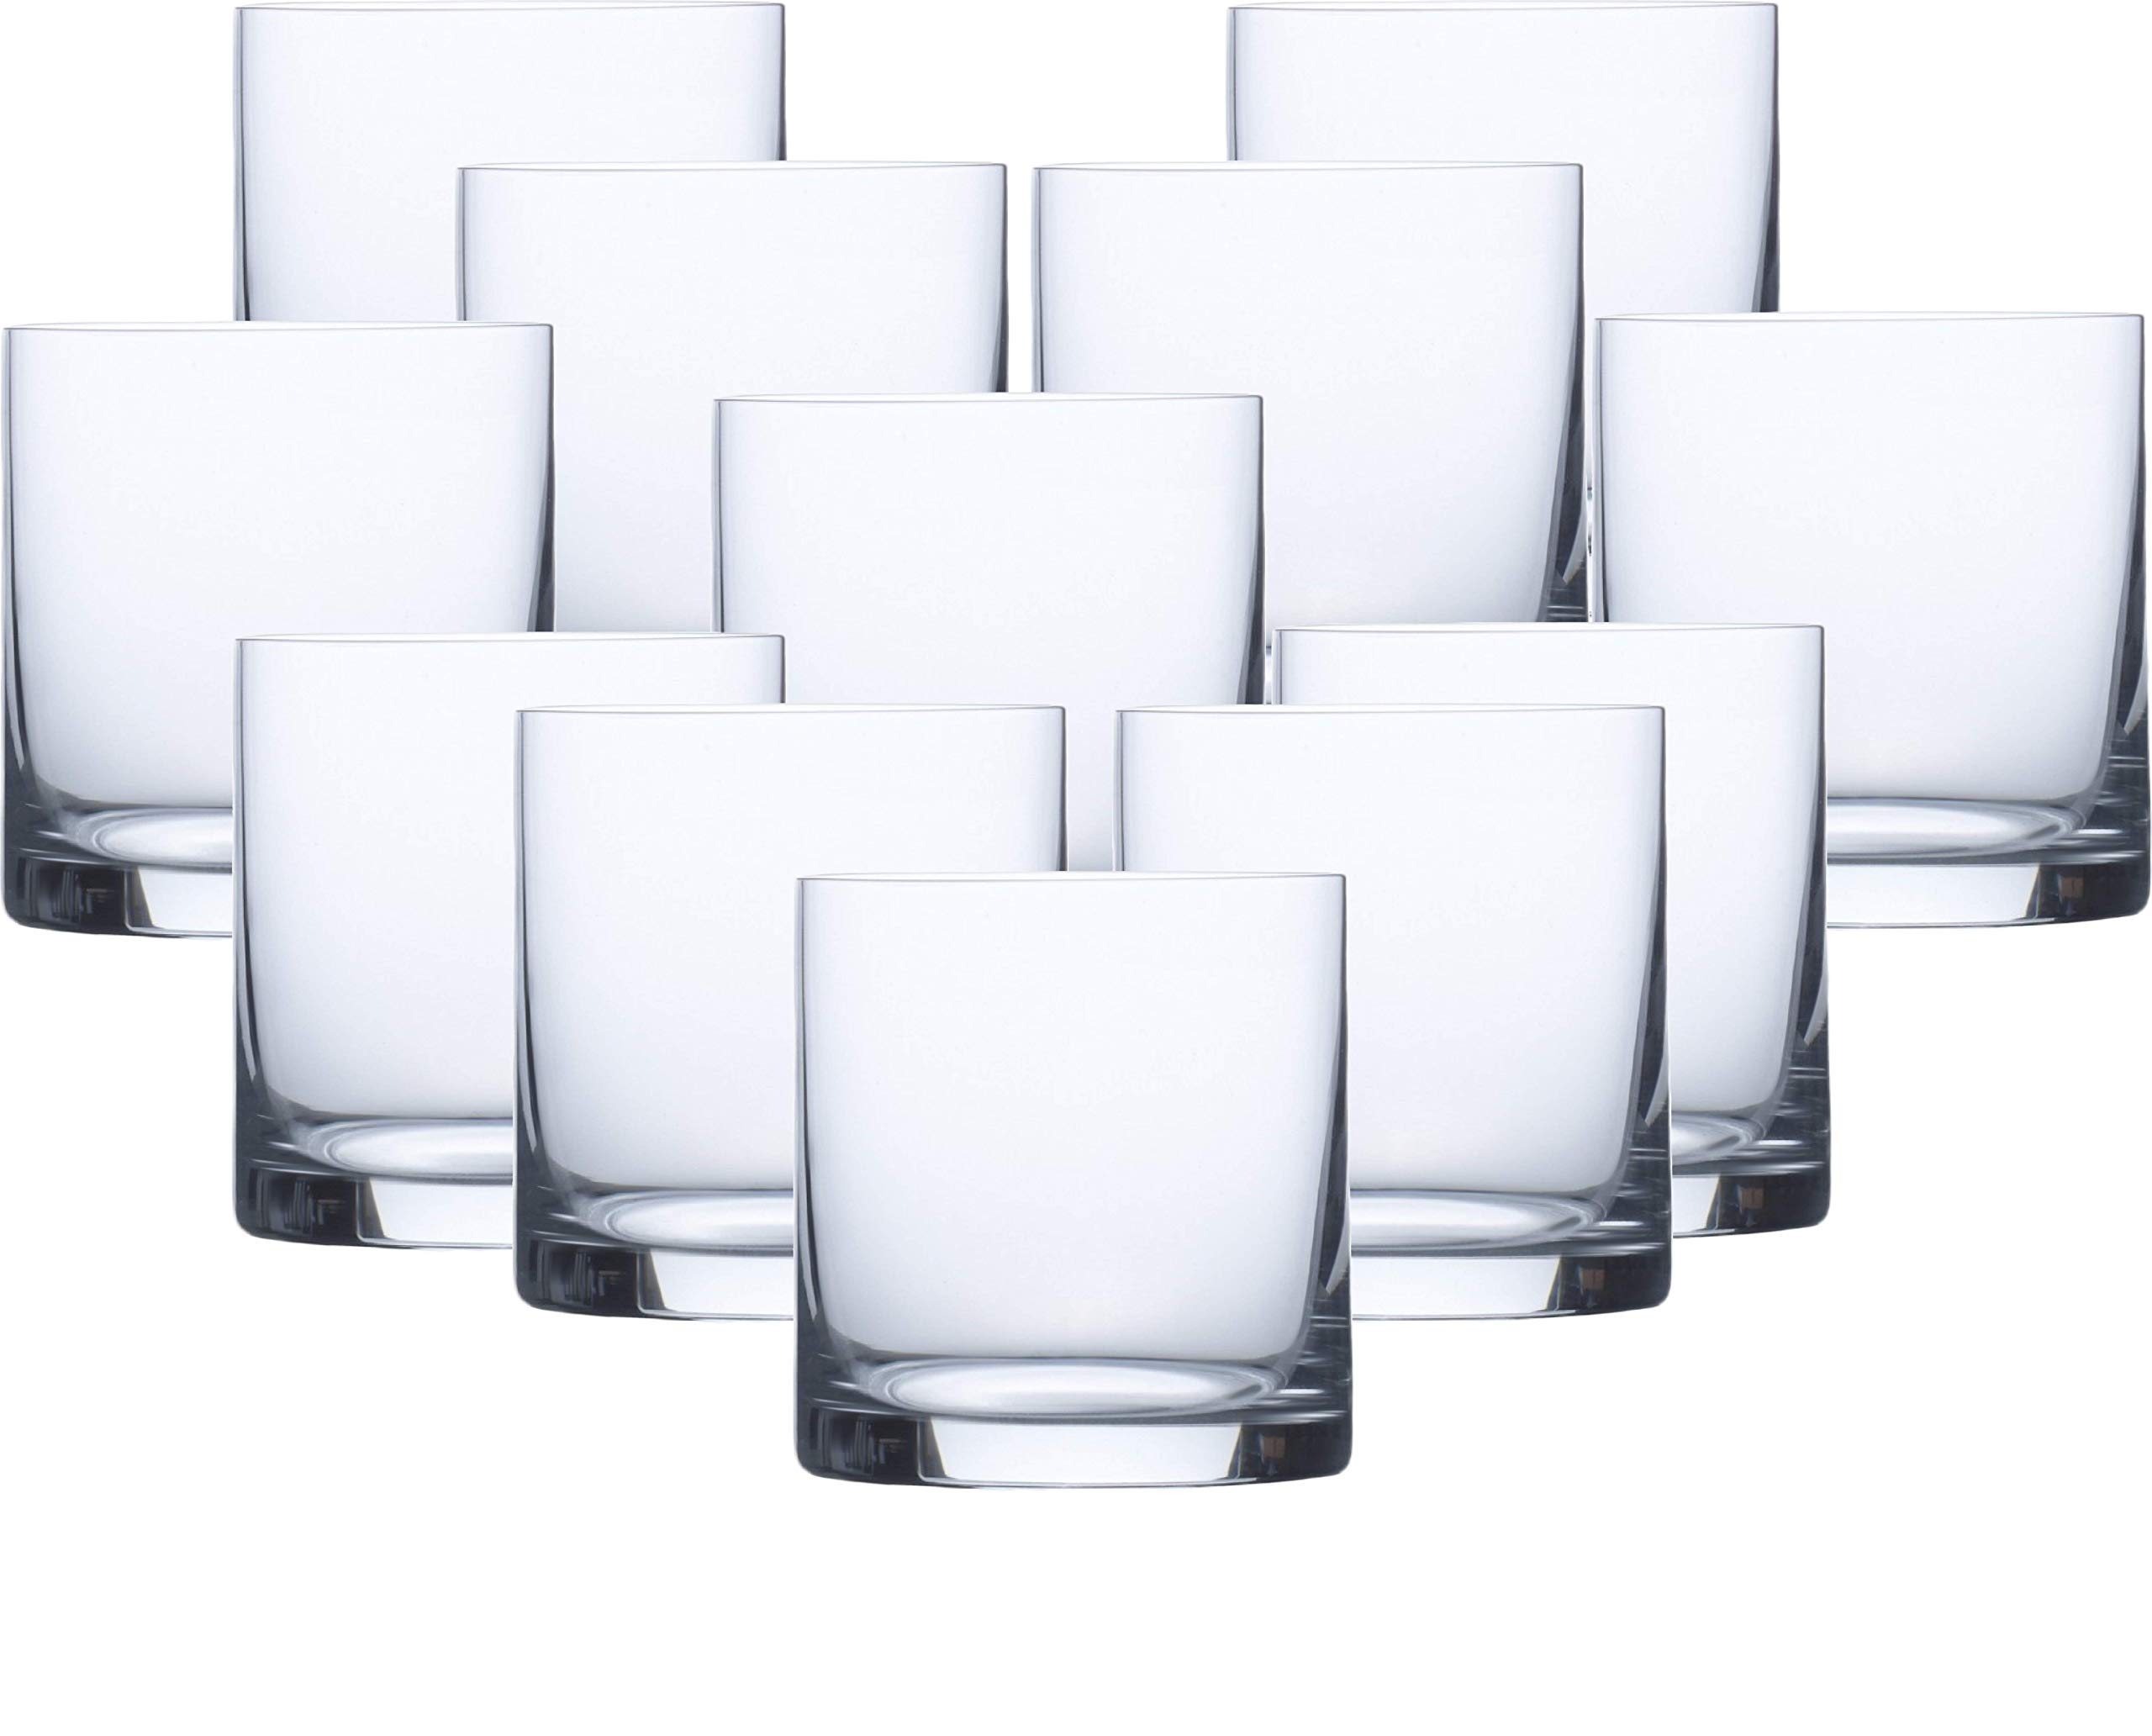 Circleware 04495/AM Soiree Double Old Fashioned Whiskey Glasses, Set of 12 Drinking Glassware for Water, Juice, Ice Tea, Beer, Wine and Liquor Beverages, 15 oz Huge-12pc